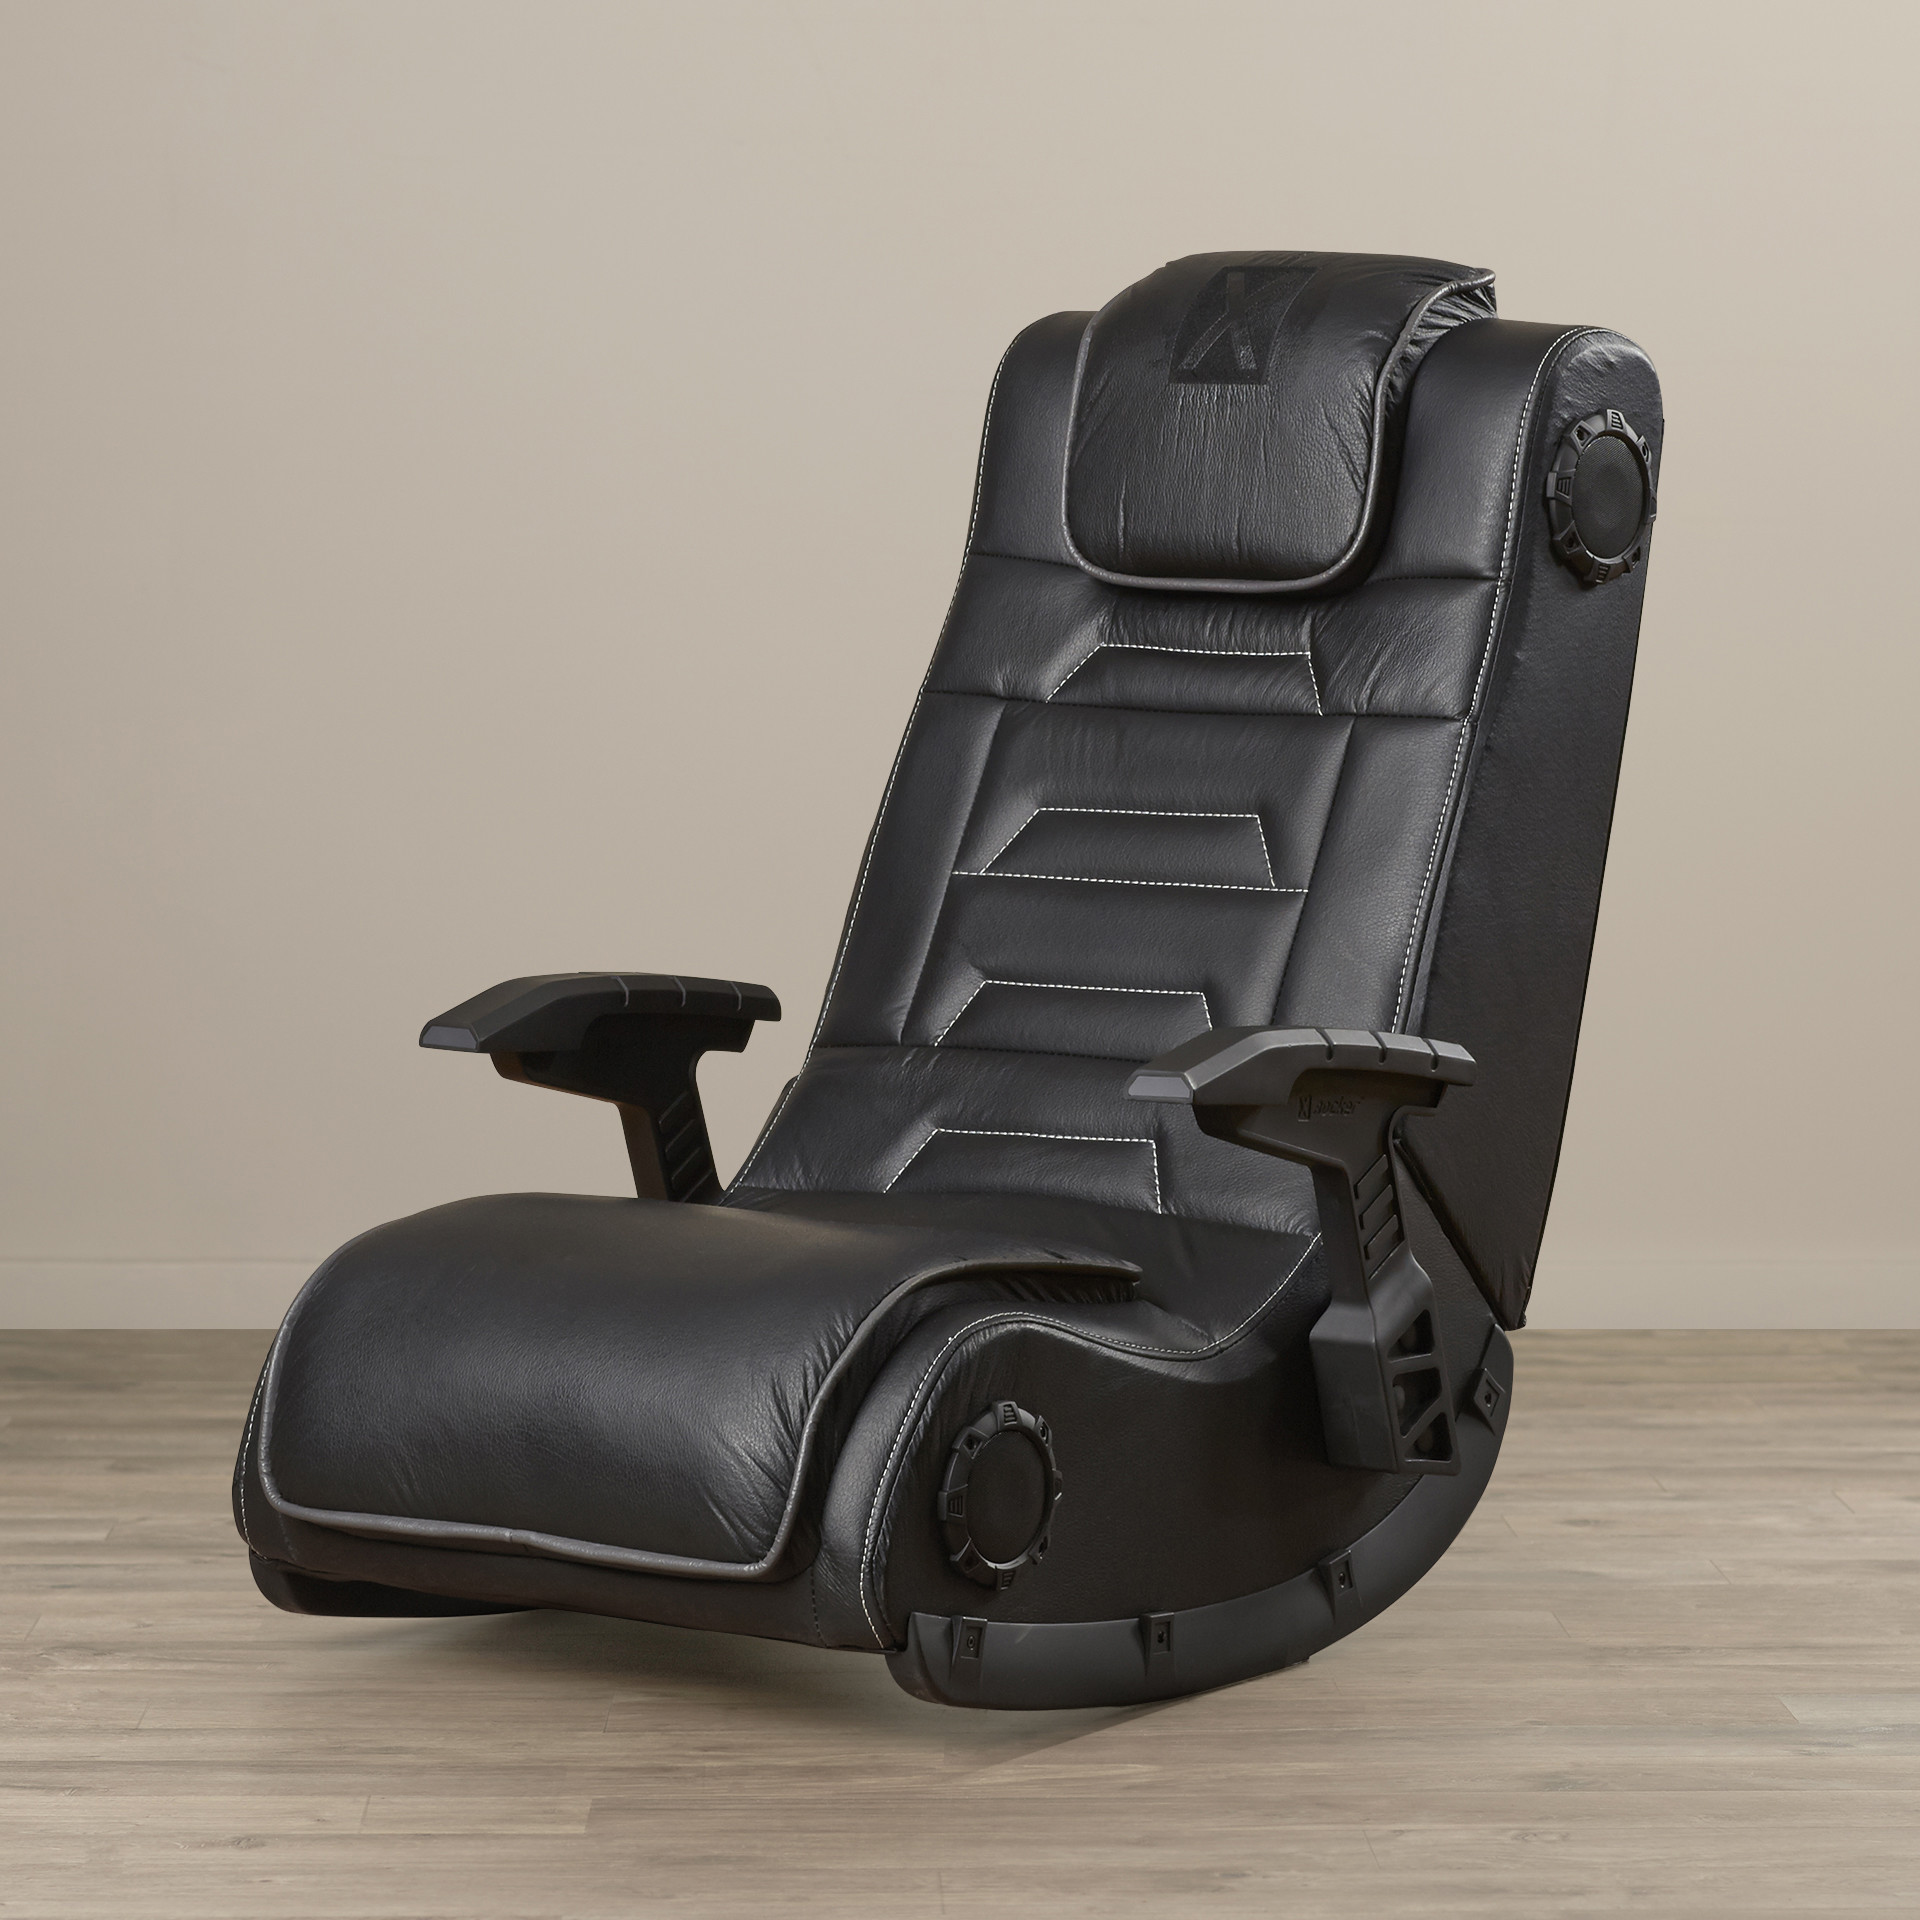 Wade LoganC2AE Keith Wireless Video Gaming Chair